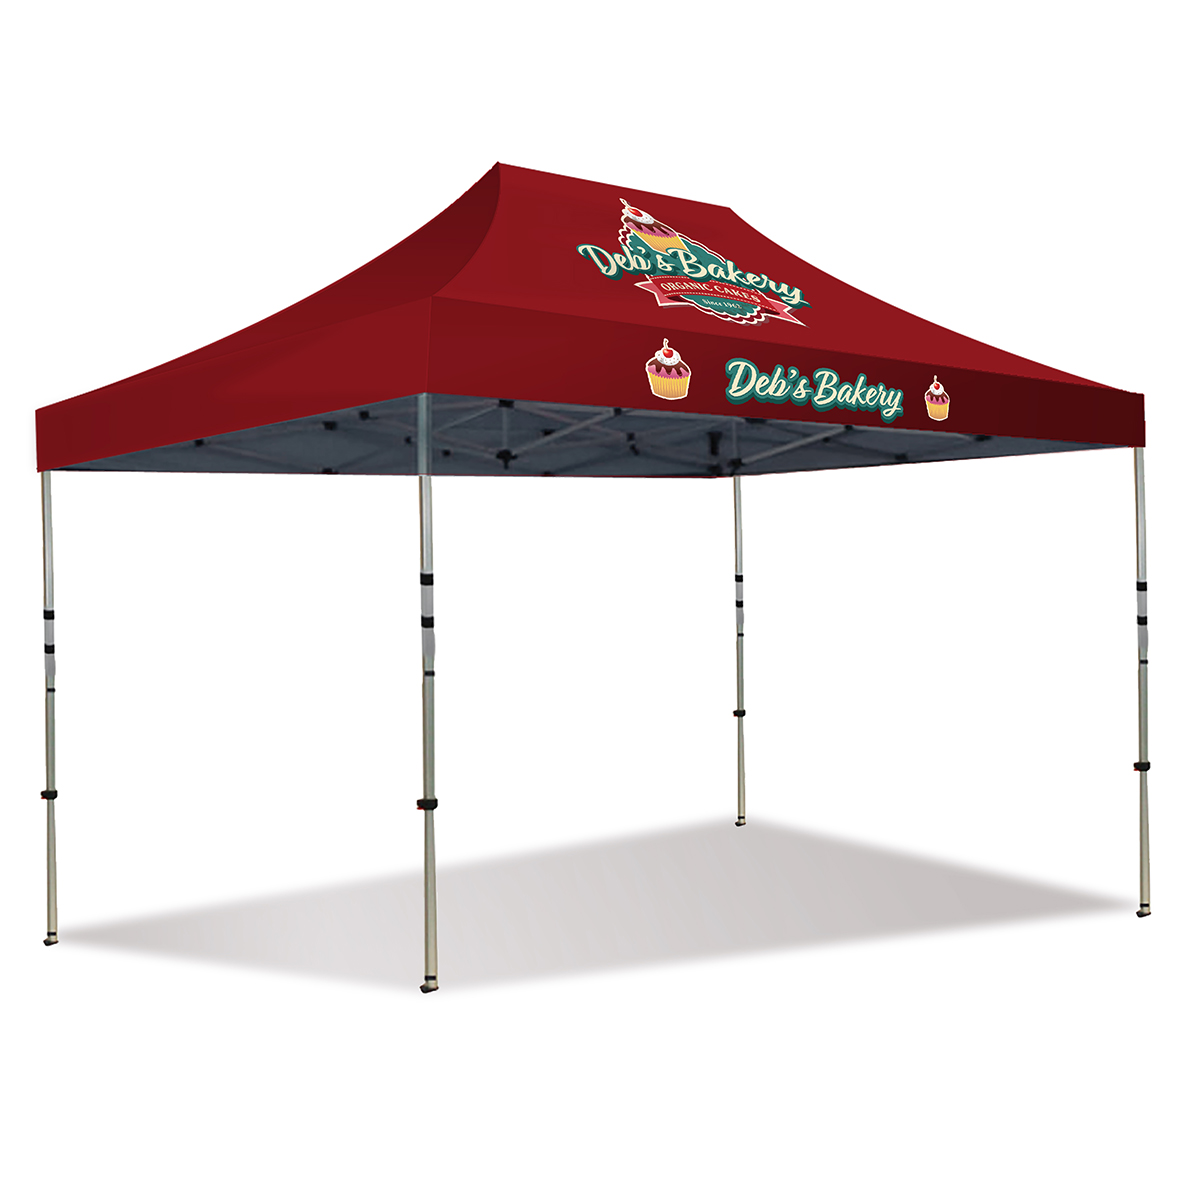 15ft Pop Up Canopy - Full Color (Front Panel Only)